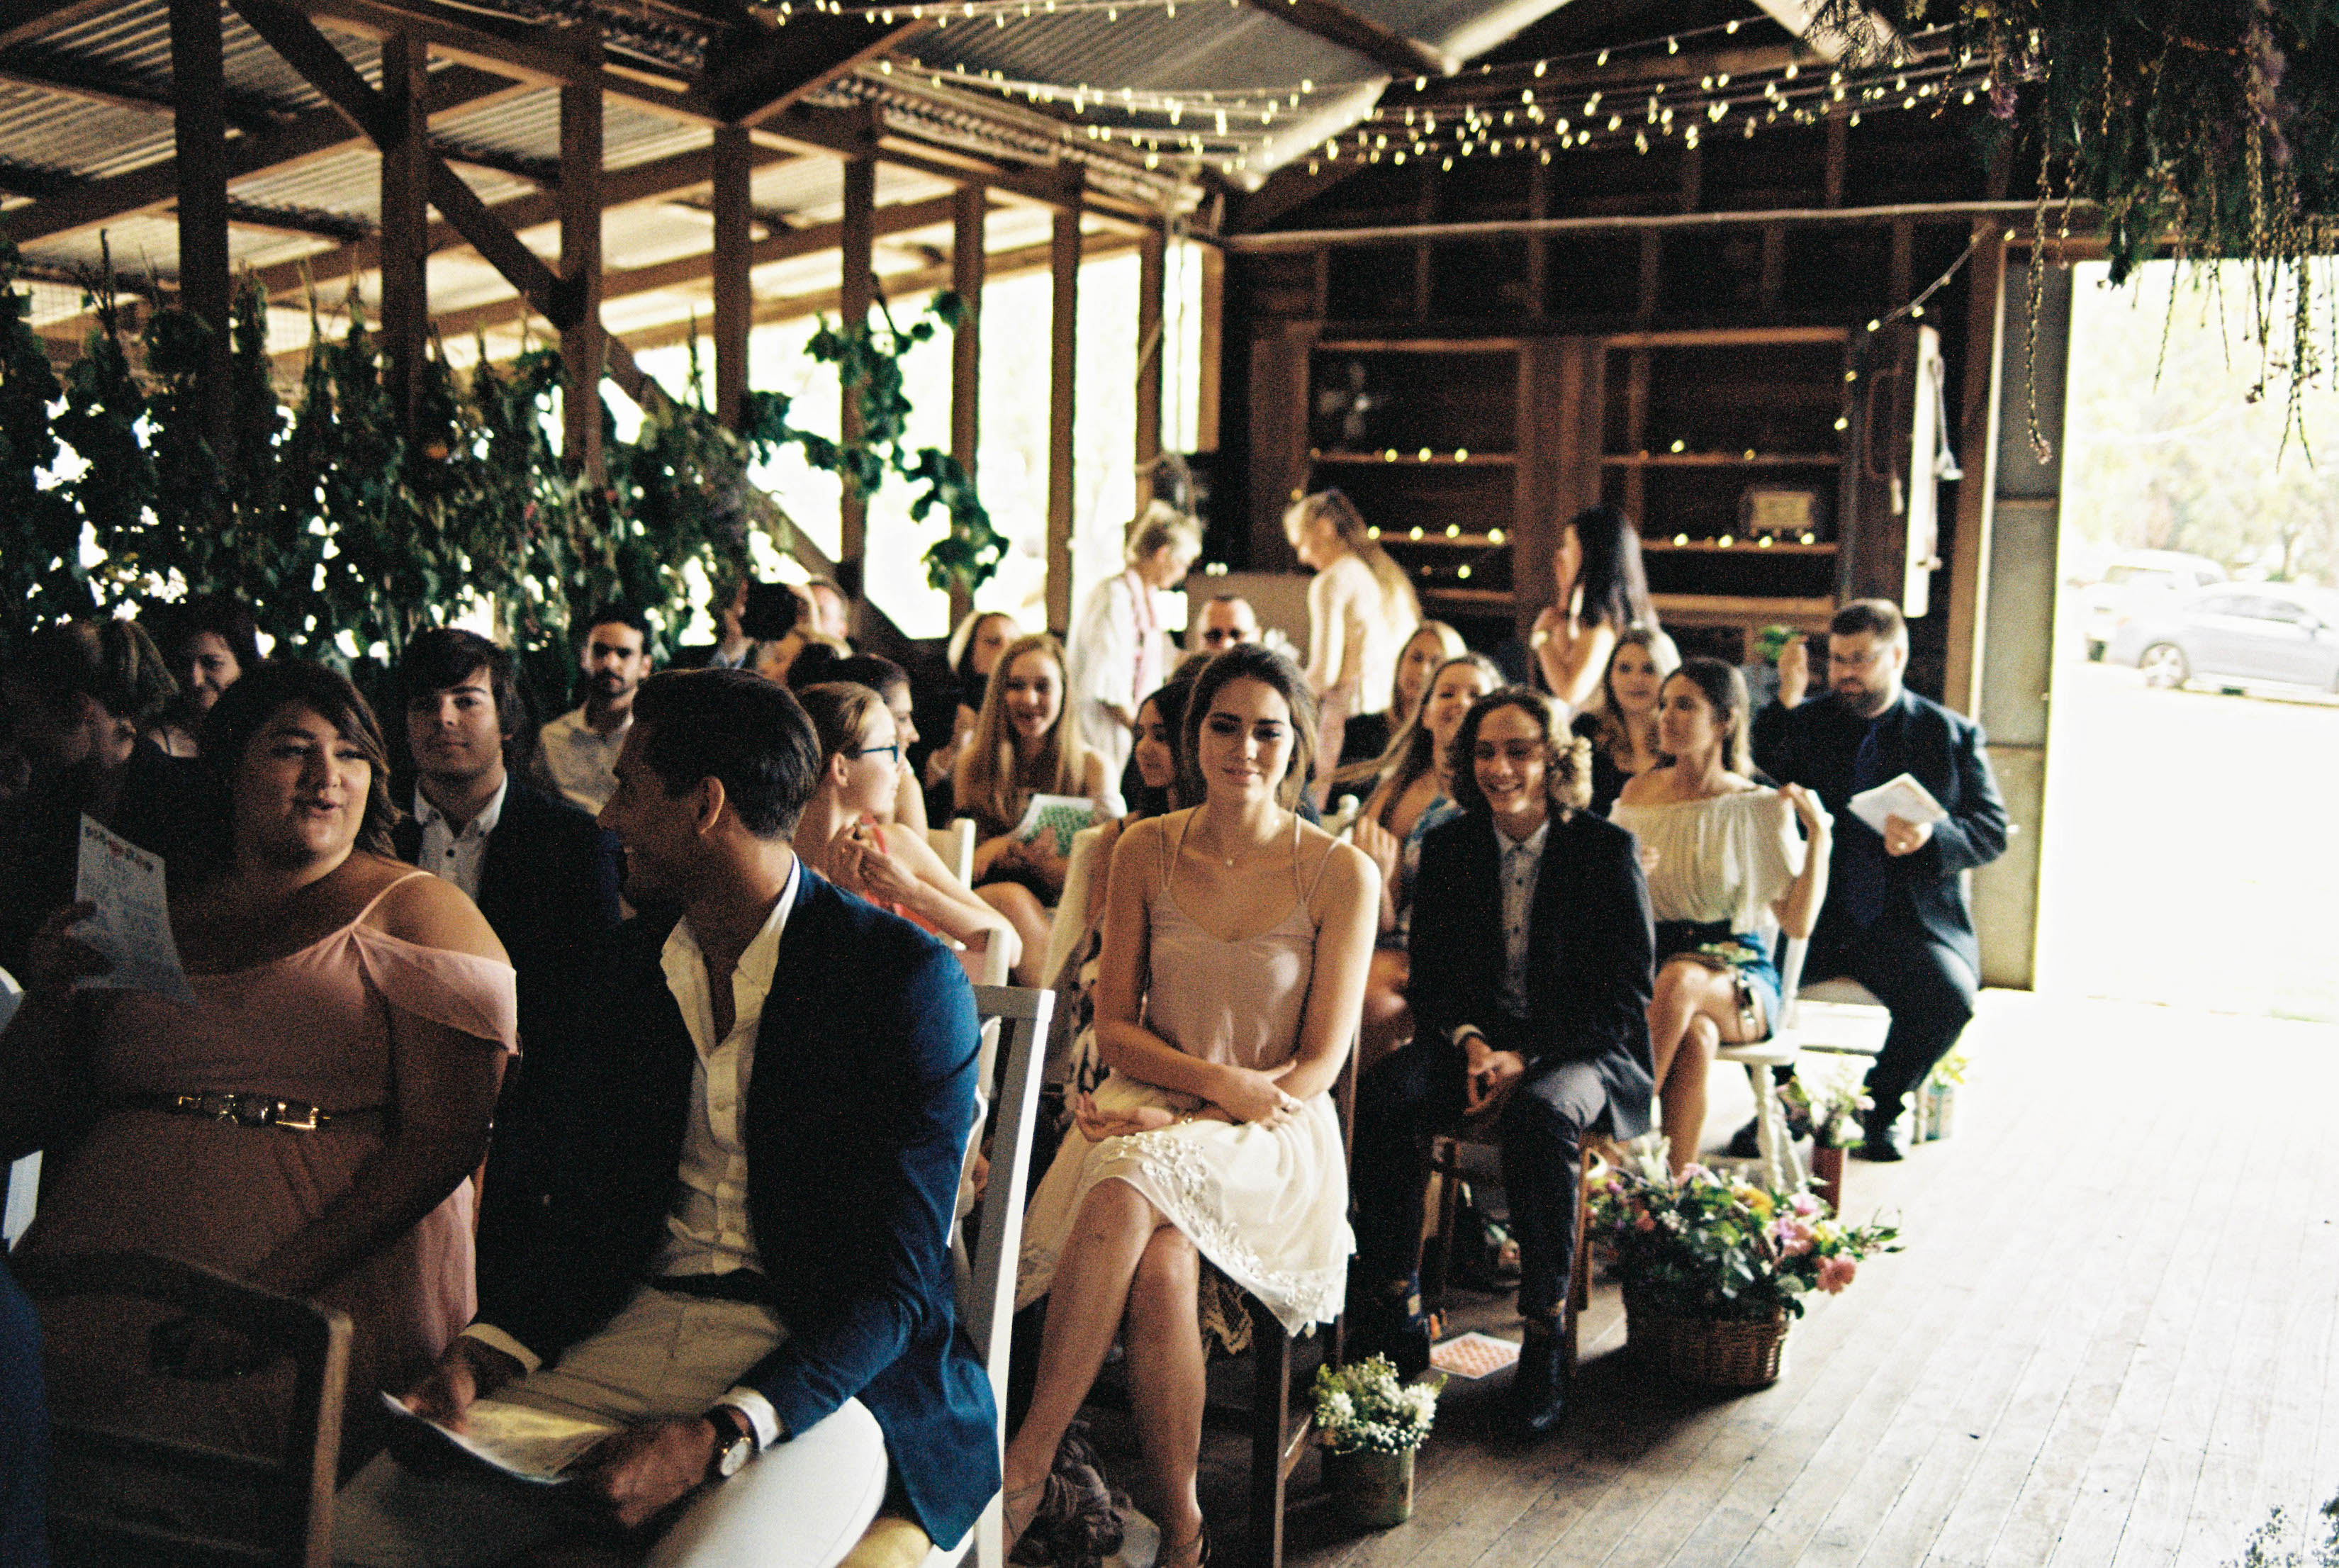 A photo of guests waiting for the wedding ceremony to start in a Shearing Shed in the South West